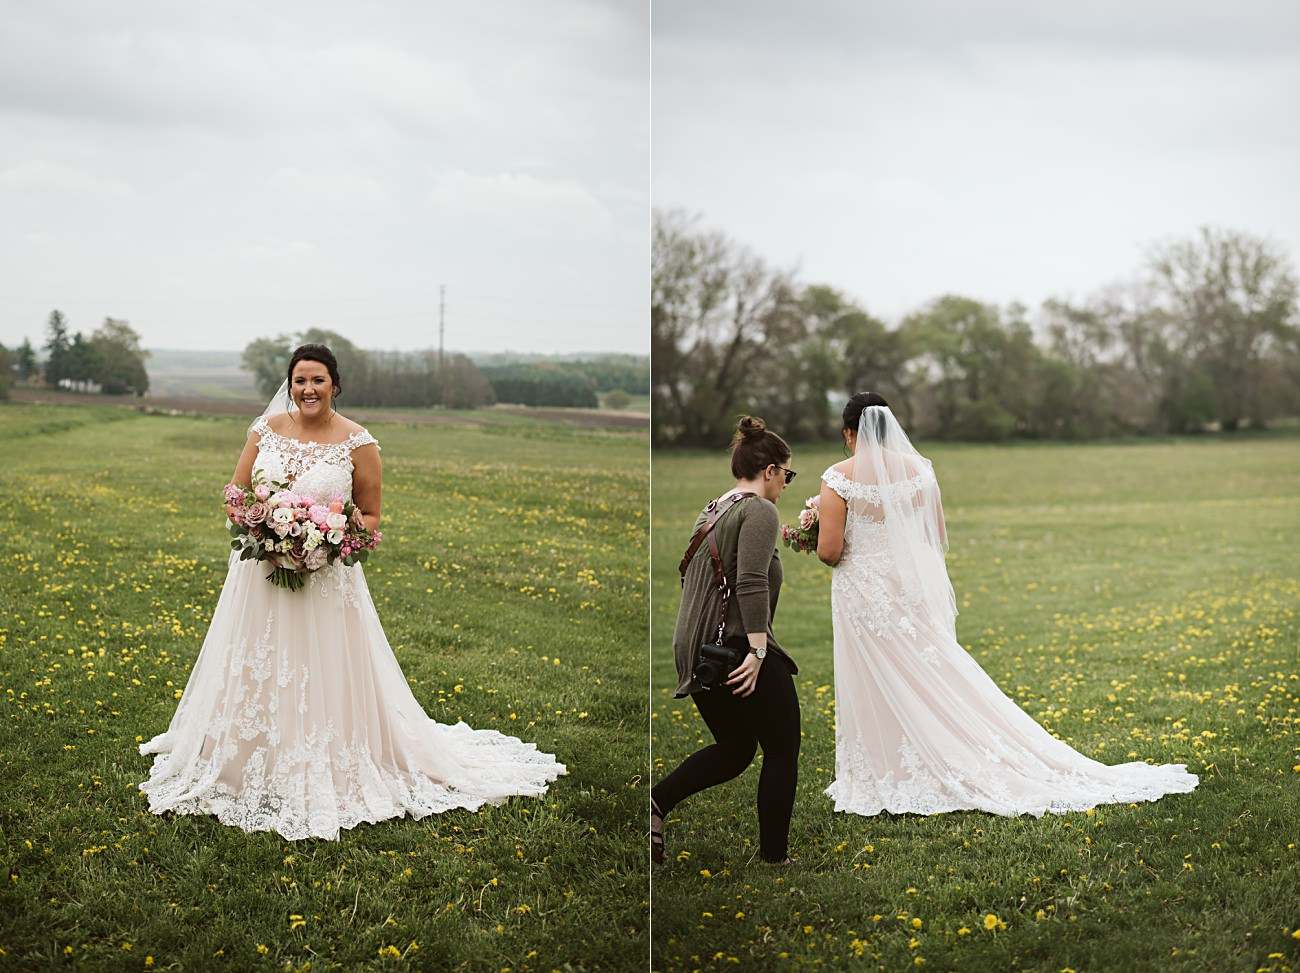 Barn Wedding In Wisconsin, Over the Vines Wedding, Bride and Groom in field, Natural Intuition Photography, Madison Wisconsin Wedding Photographer